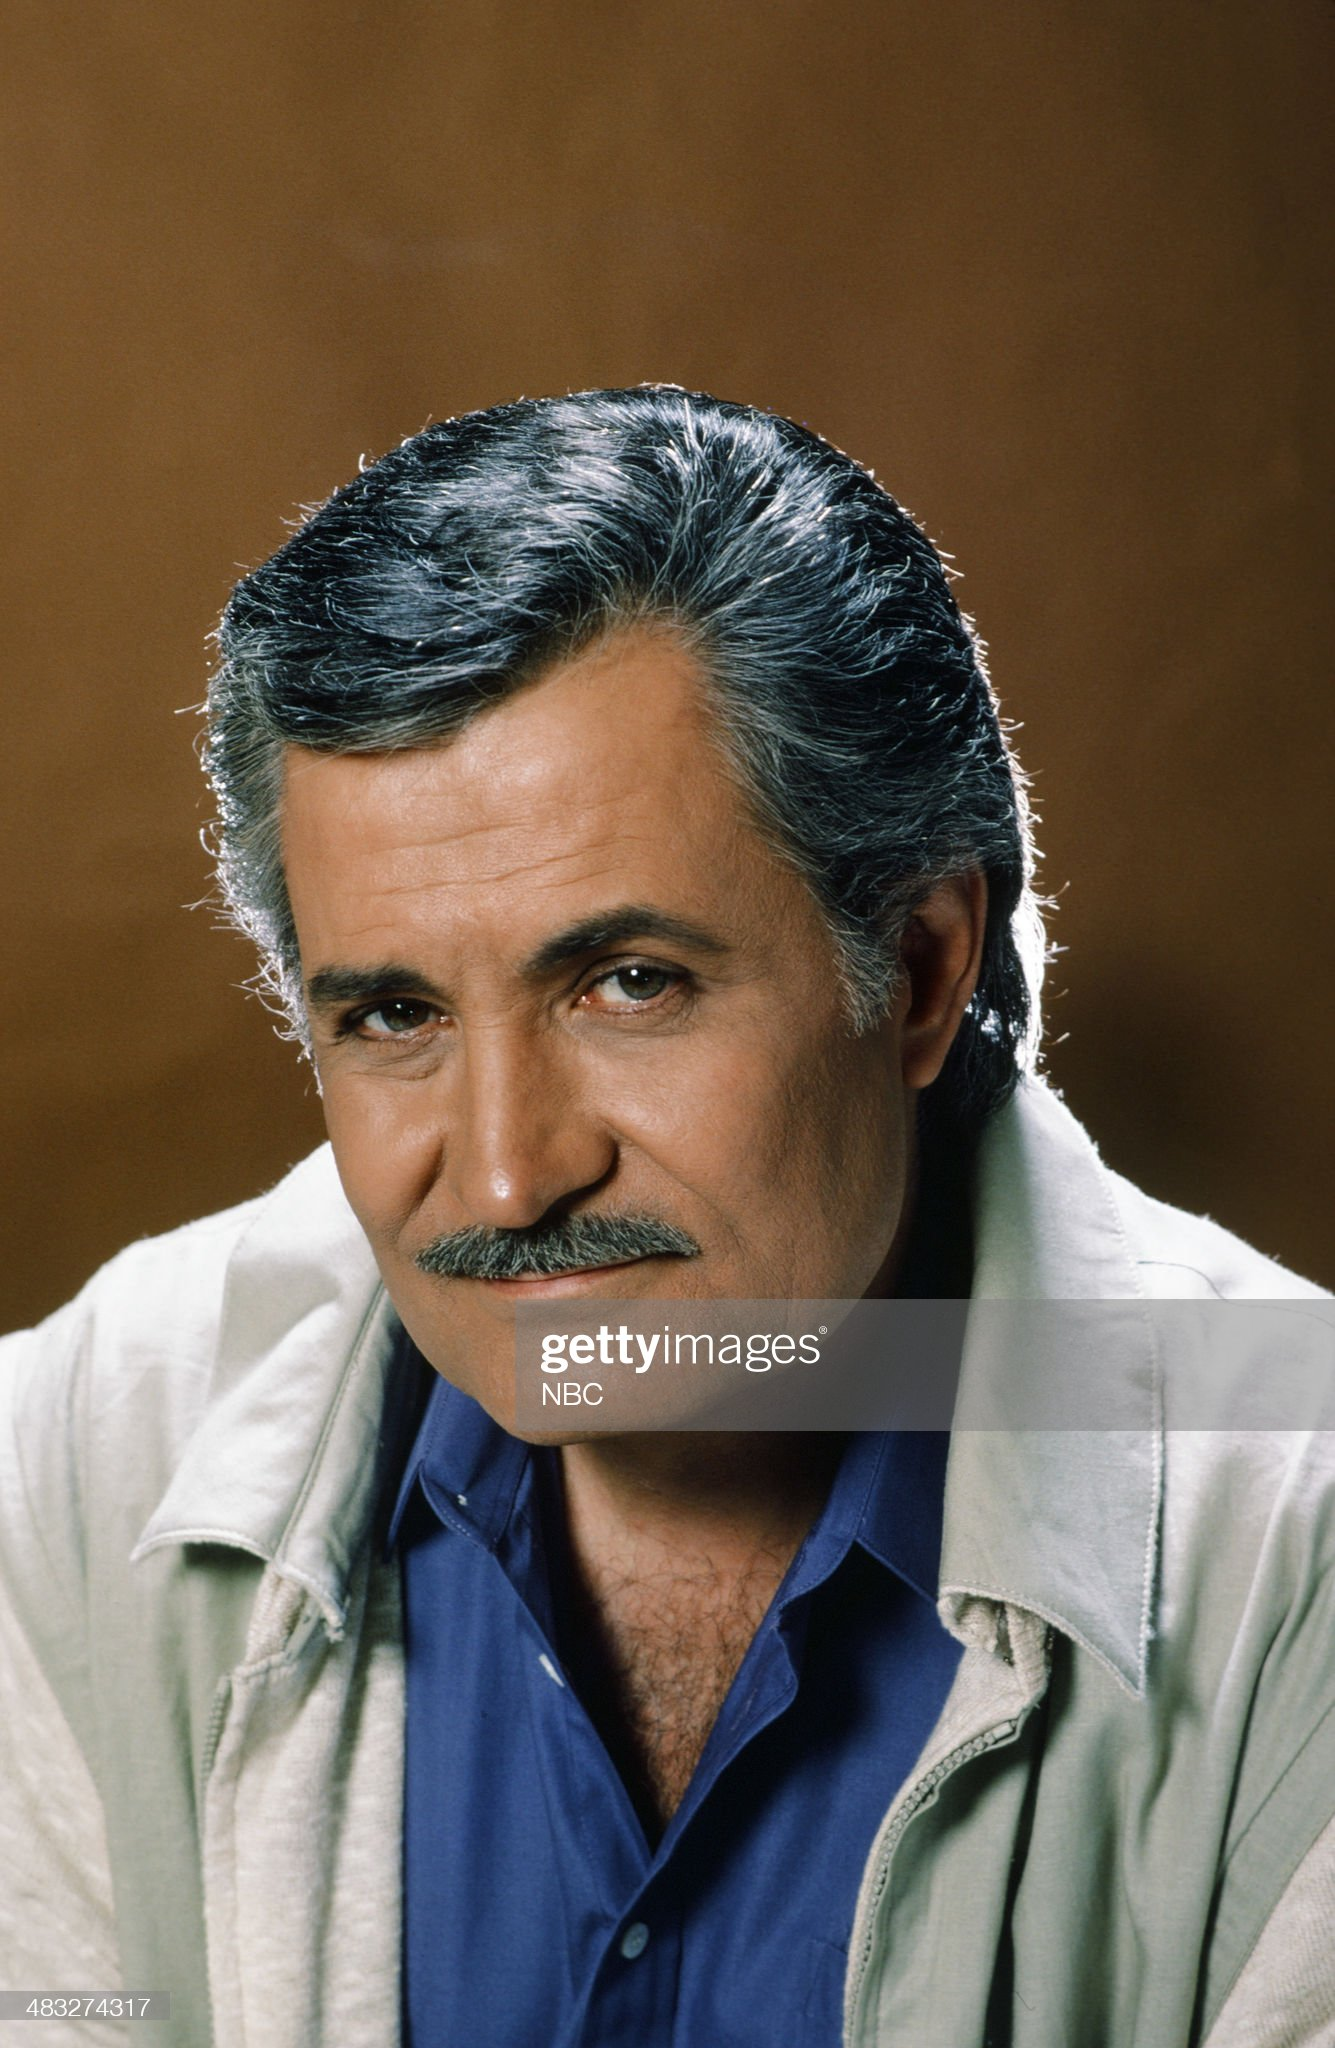 pictured-john-aniston-as-victor-kiriakis-picture-id483274317